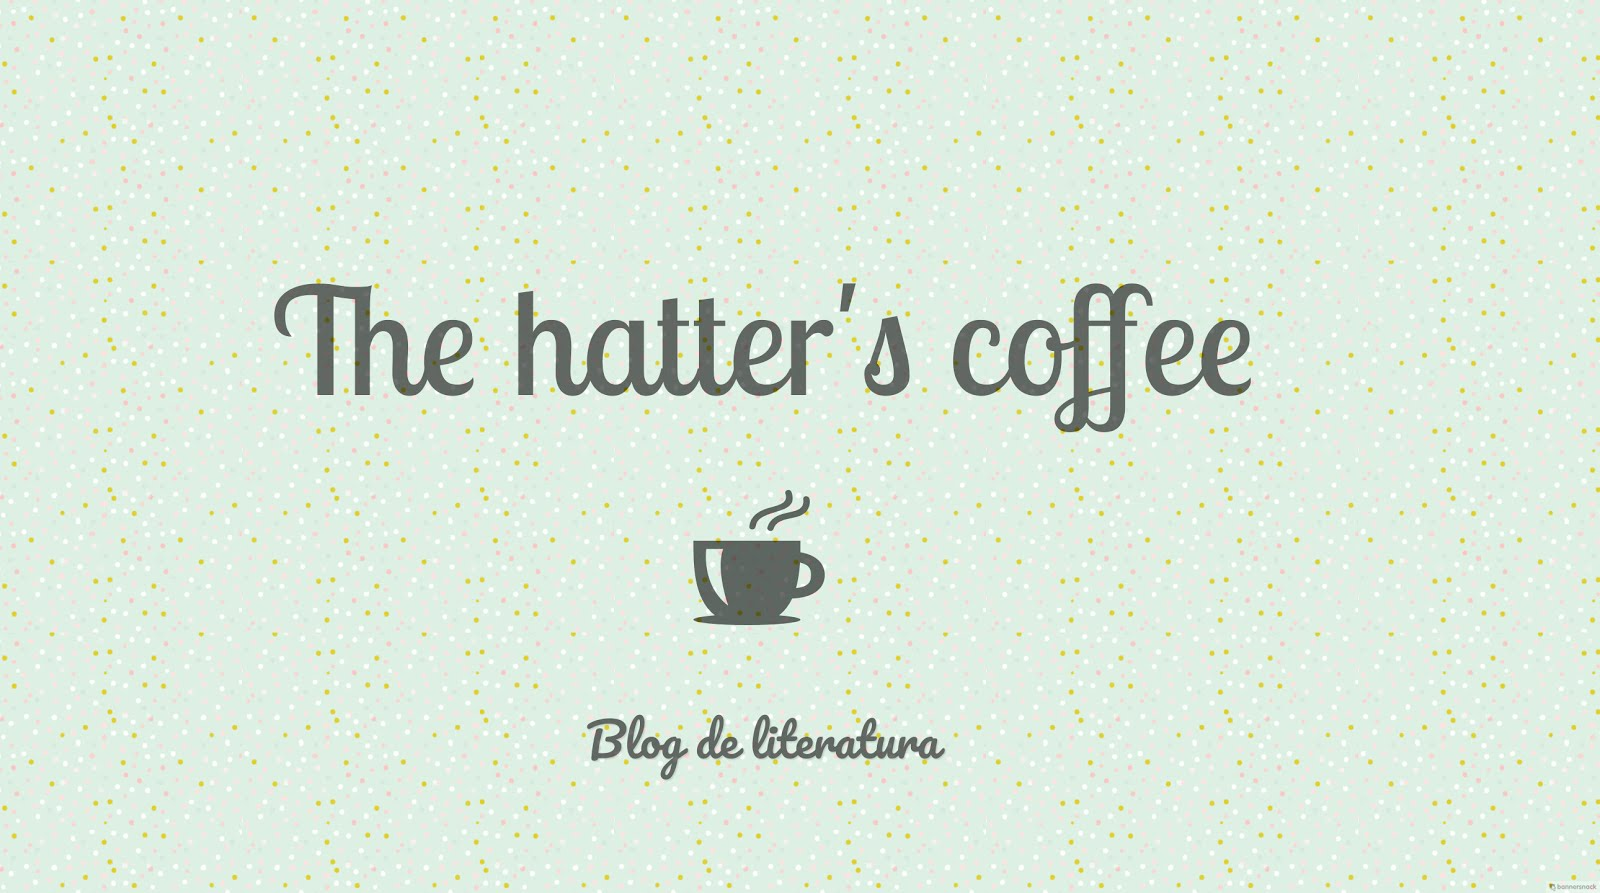 The hatter's coffee